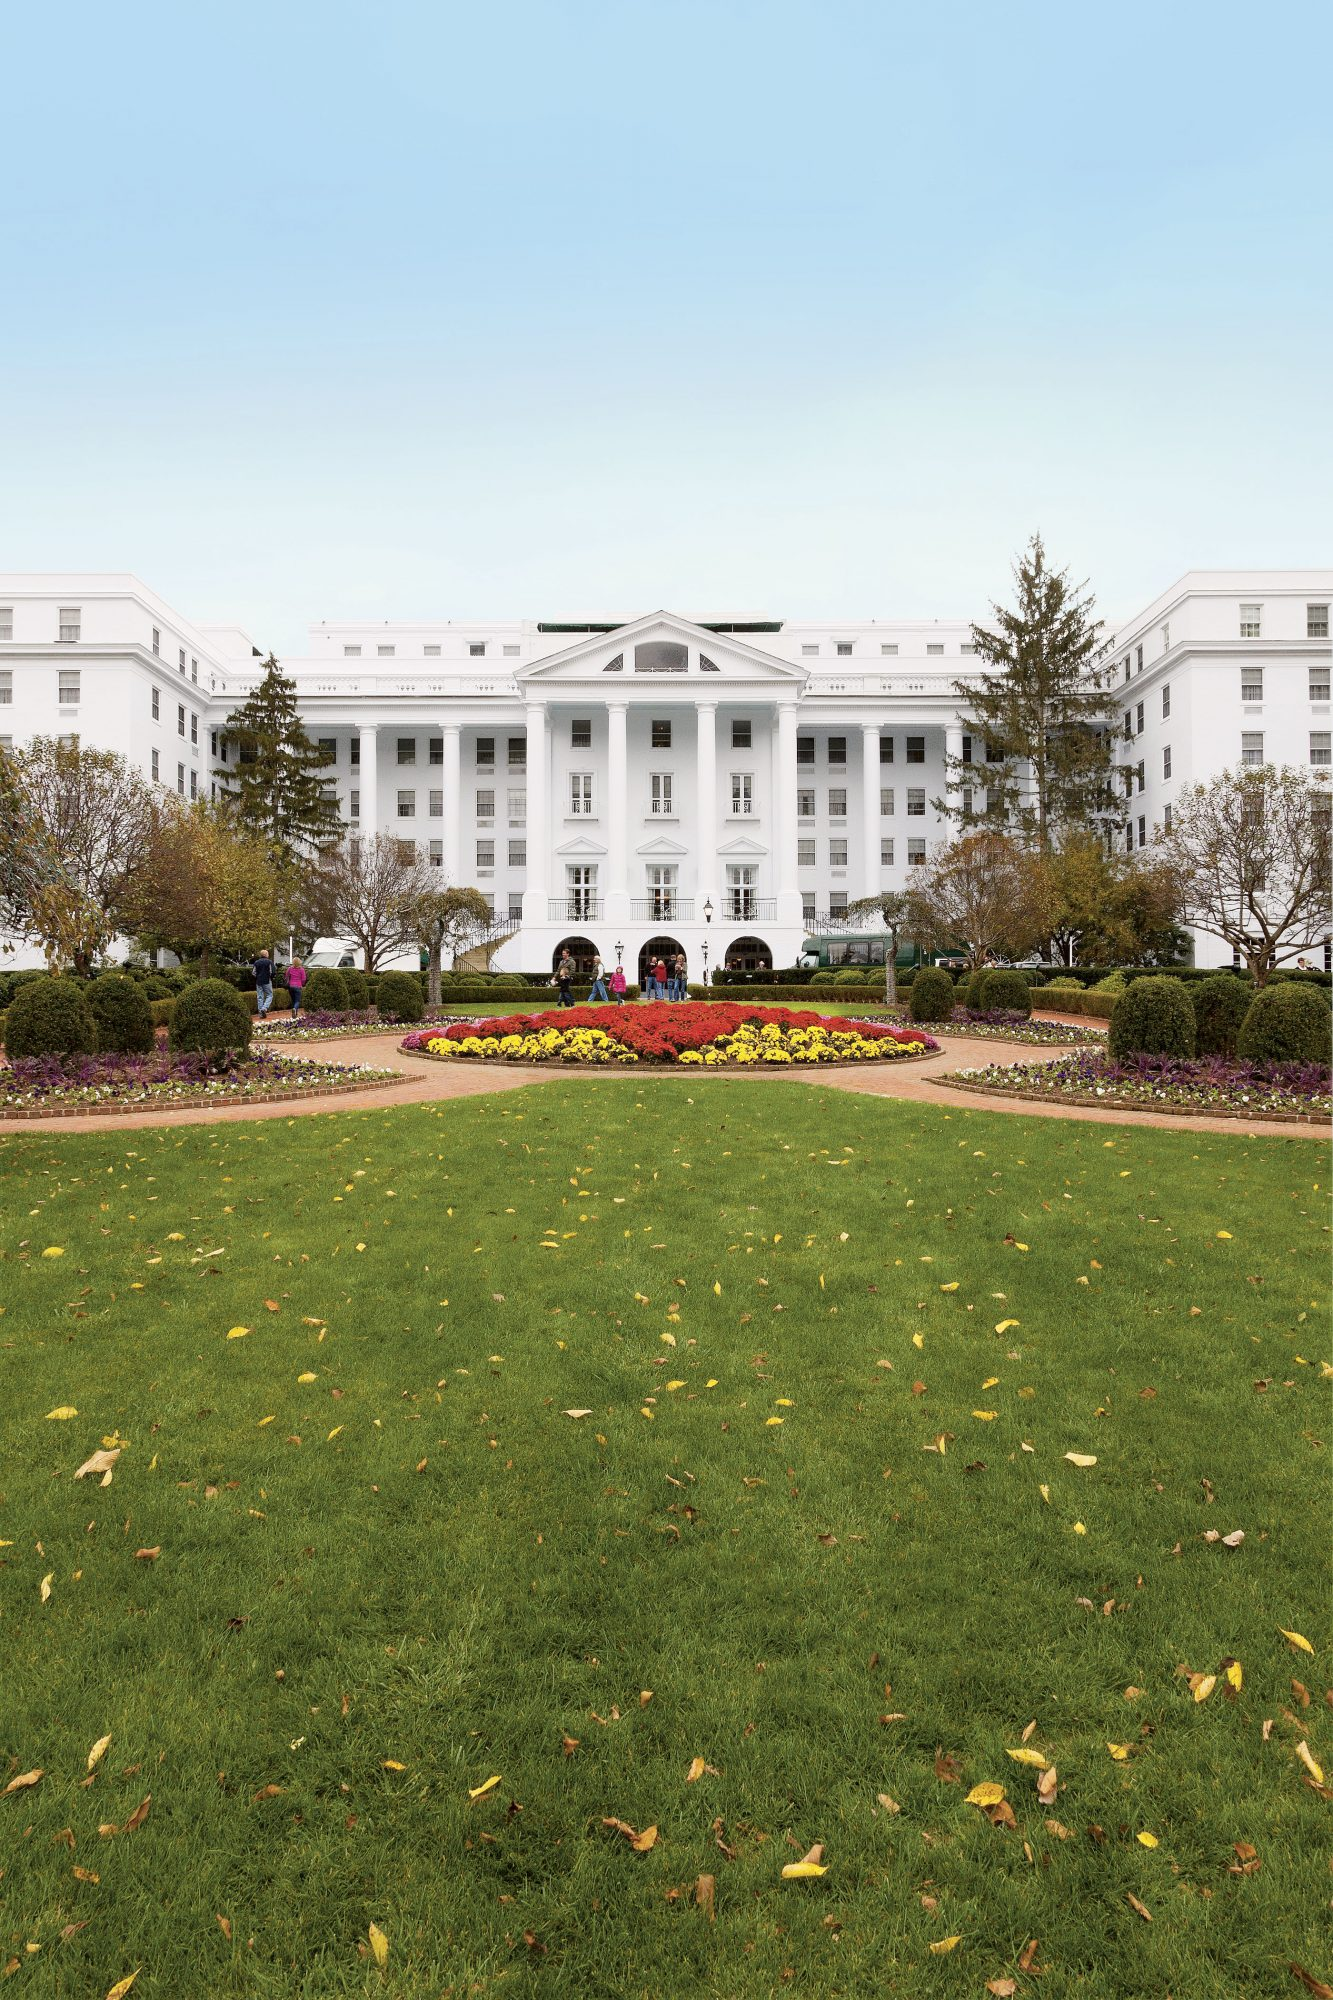 The Greenbrier in White Sulphur Springs, WV